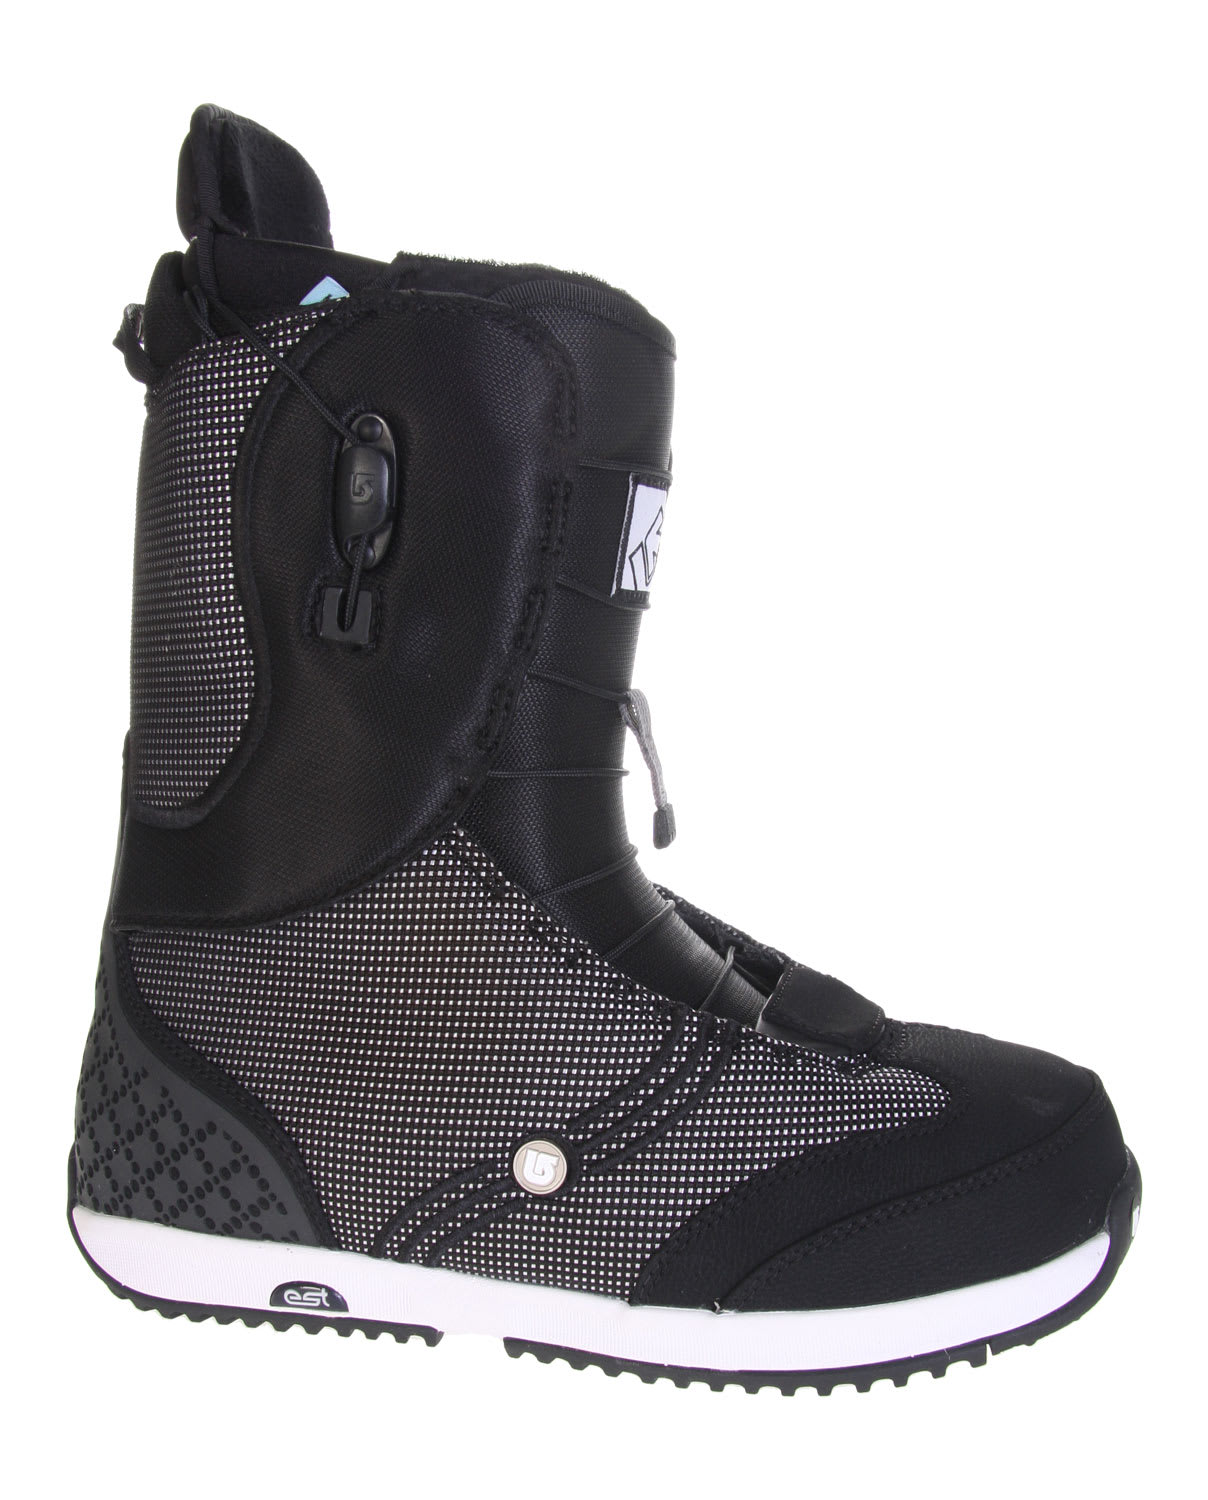 Shop for Burton Axel Snowboard Boots Black - Women's